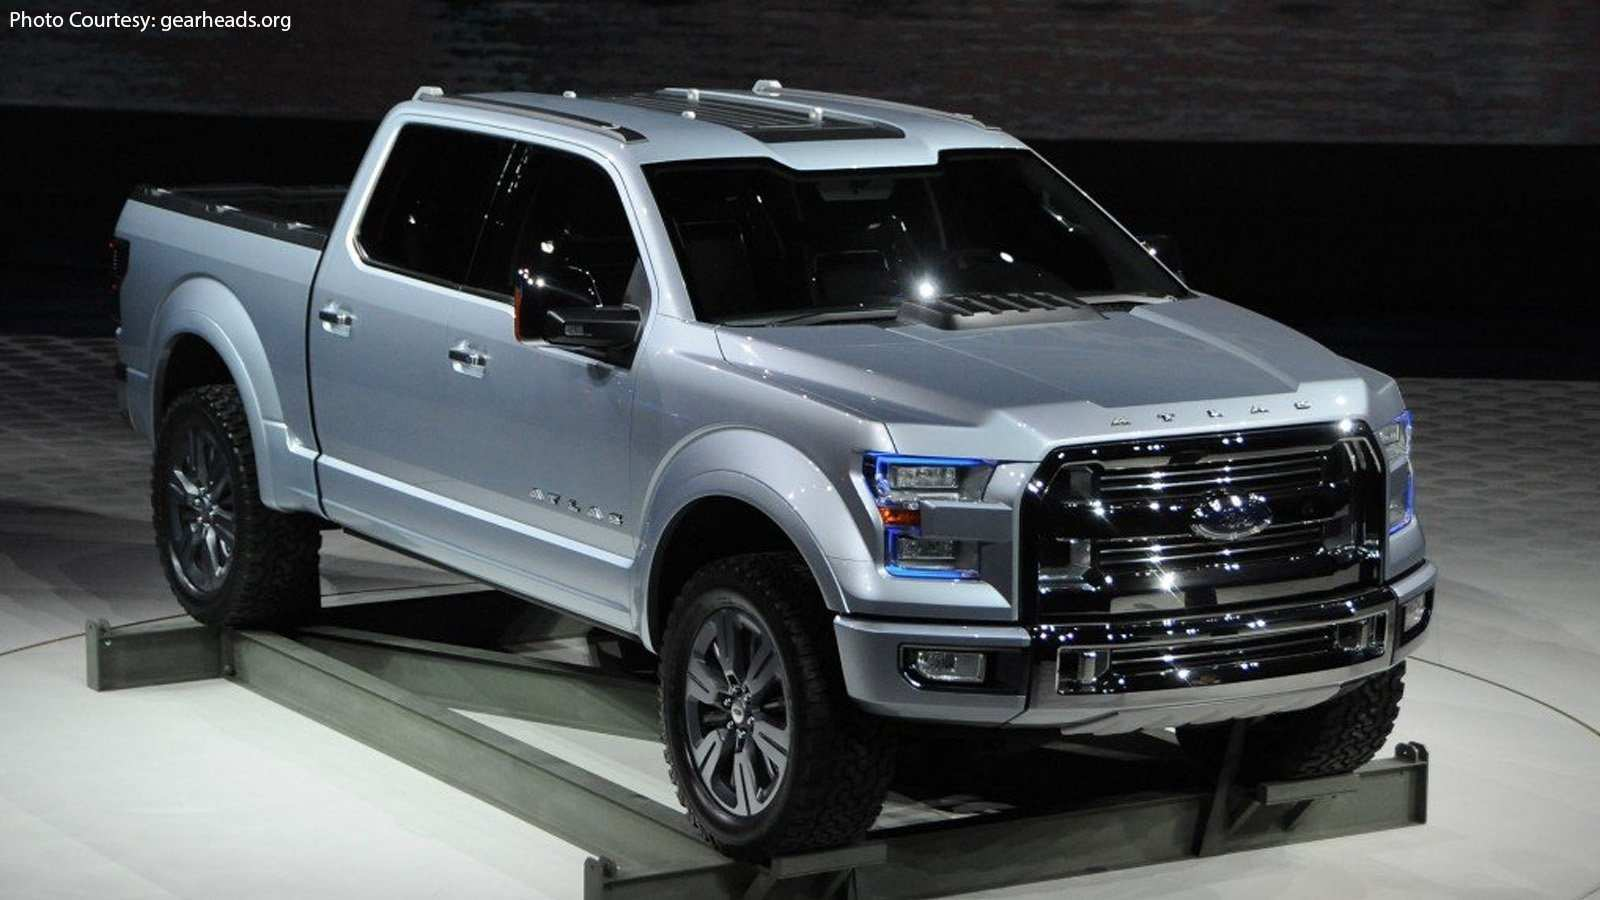 12 Concept of 2019 Ford Super Duty Order Guide Spy Shoot Interior with 2019 Ford Super Duty Order Guide Spy Shoot